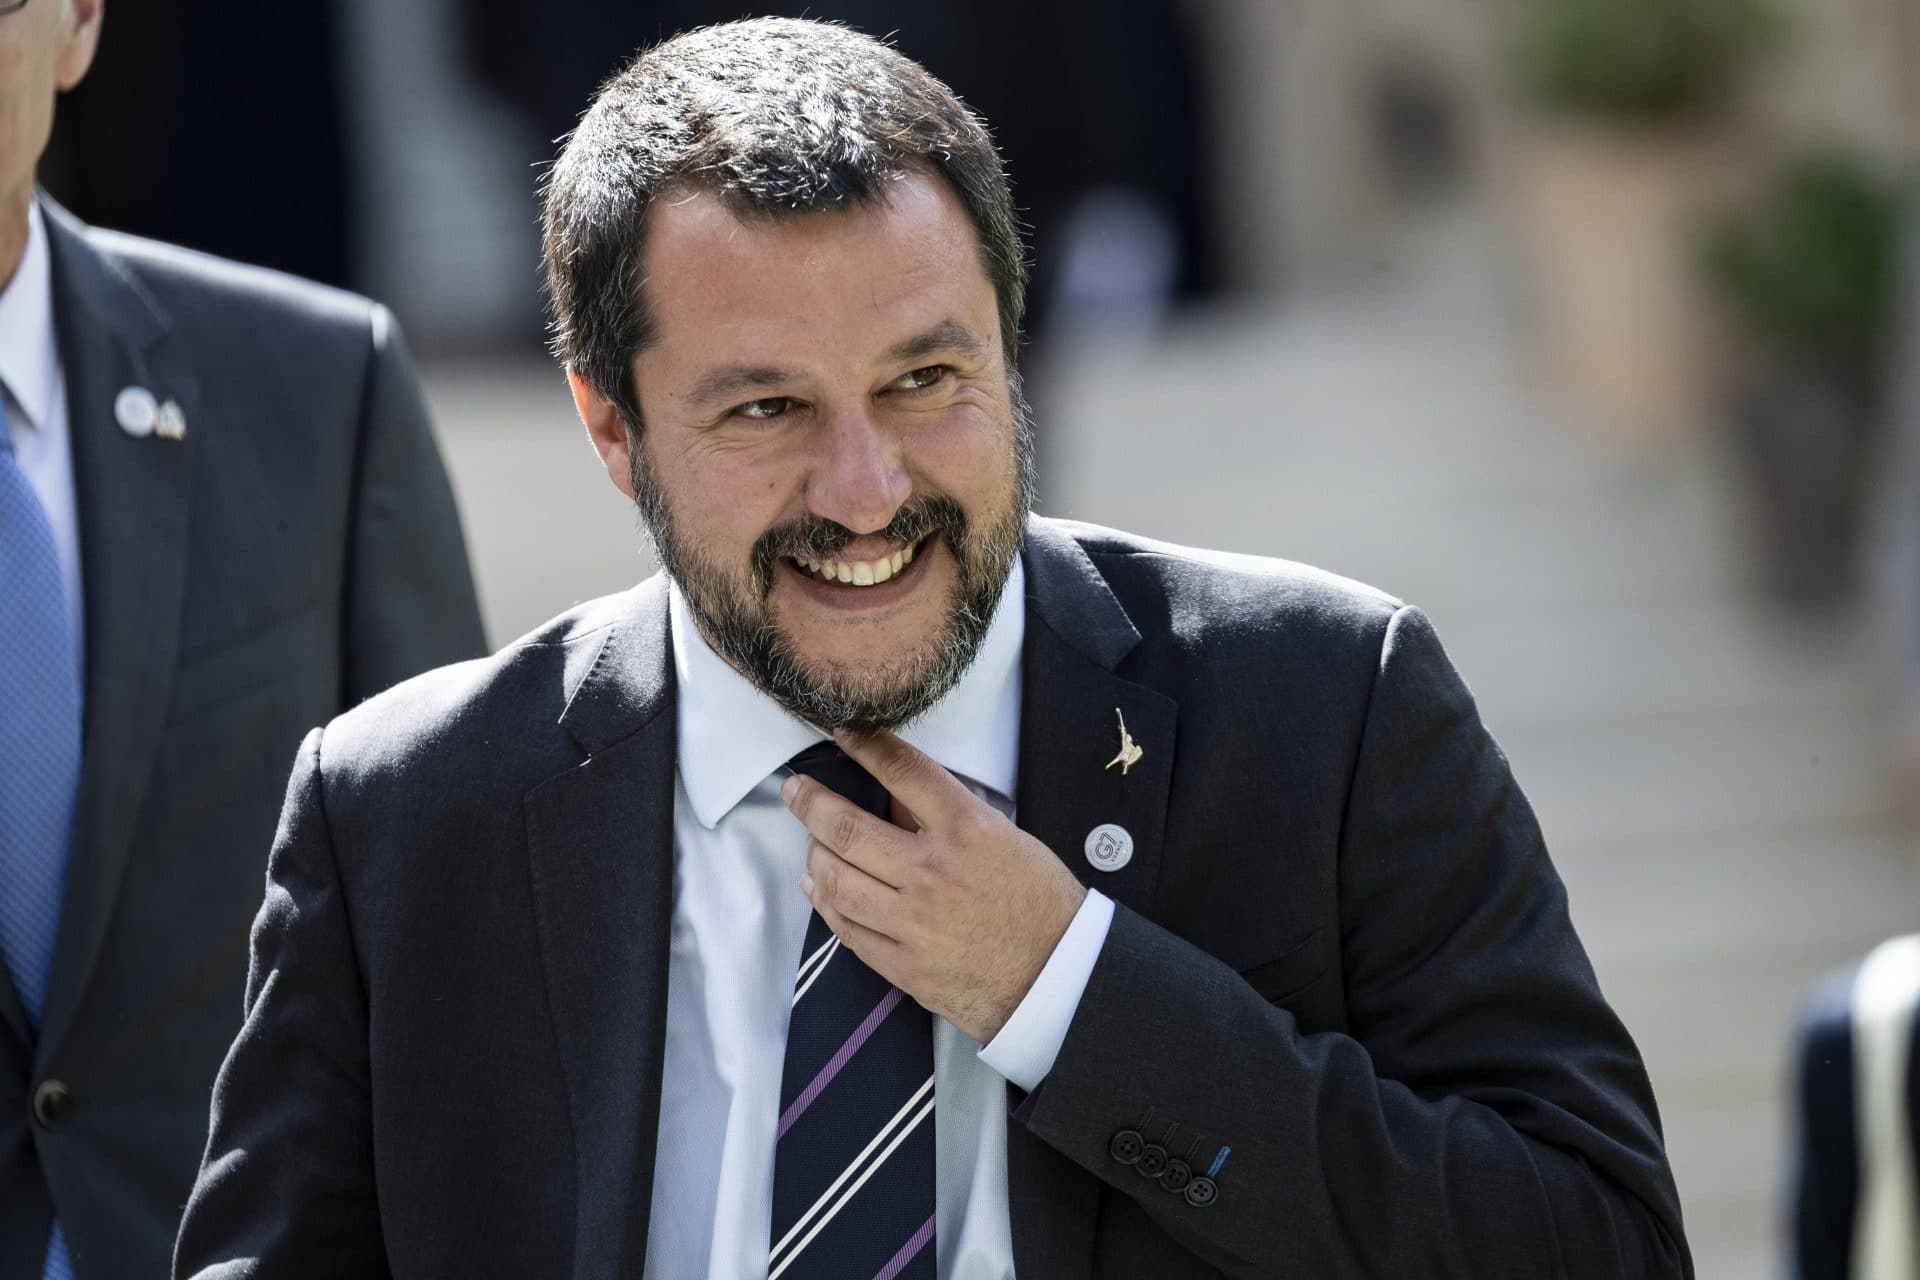 Washington, Salvini: